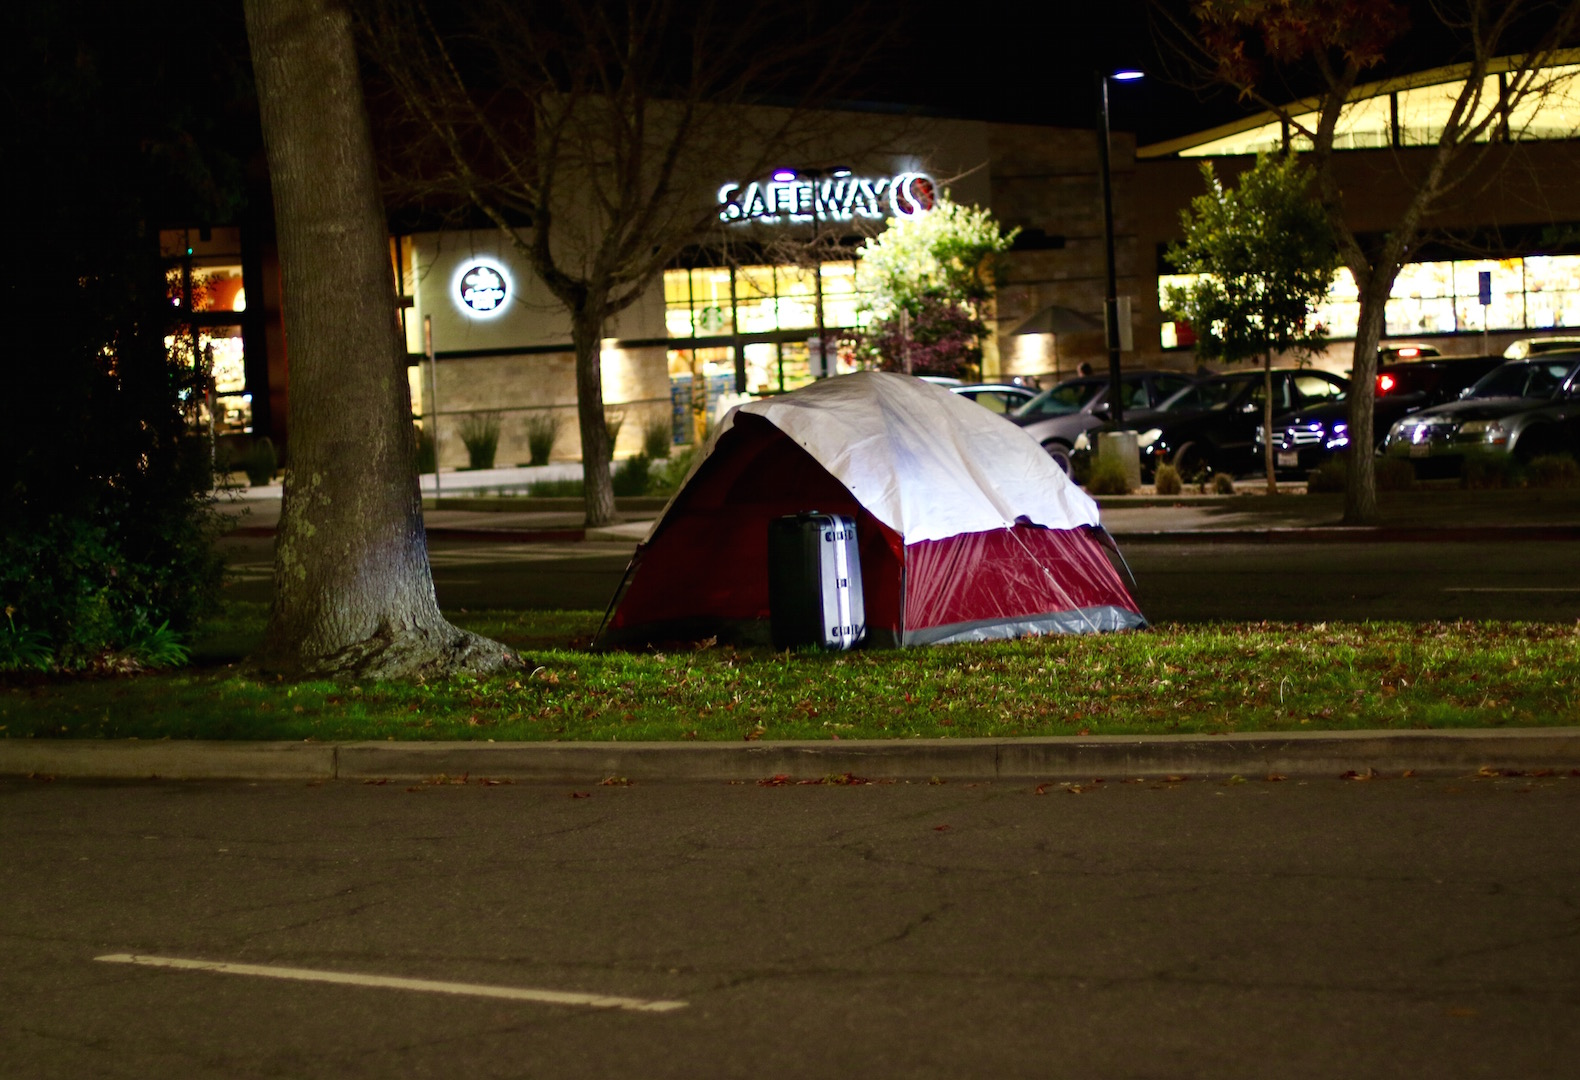 """""""We are homeless but not helpless,"""" said Mike Lee, member of the First They Came for the Homeless Encampment. """"We are the public face of a protest to demand change, so that people can talk to us and find out who we are."""""""